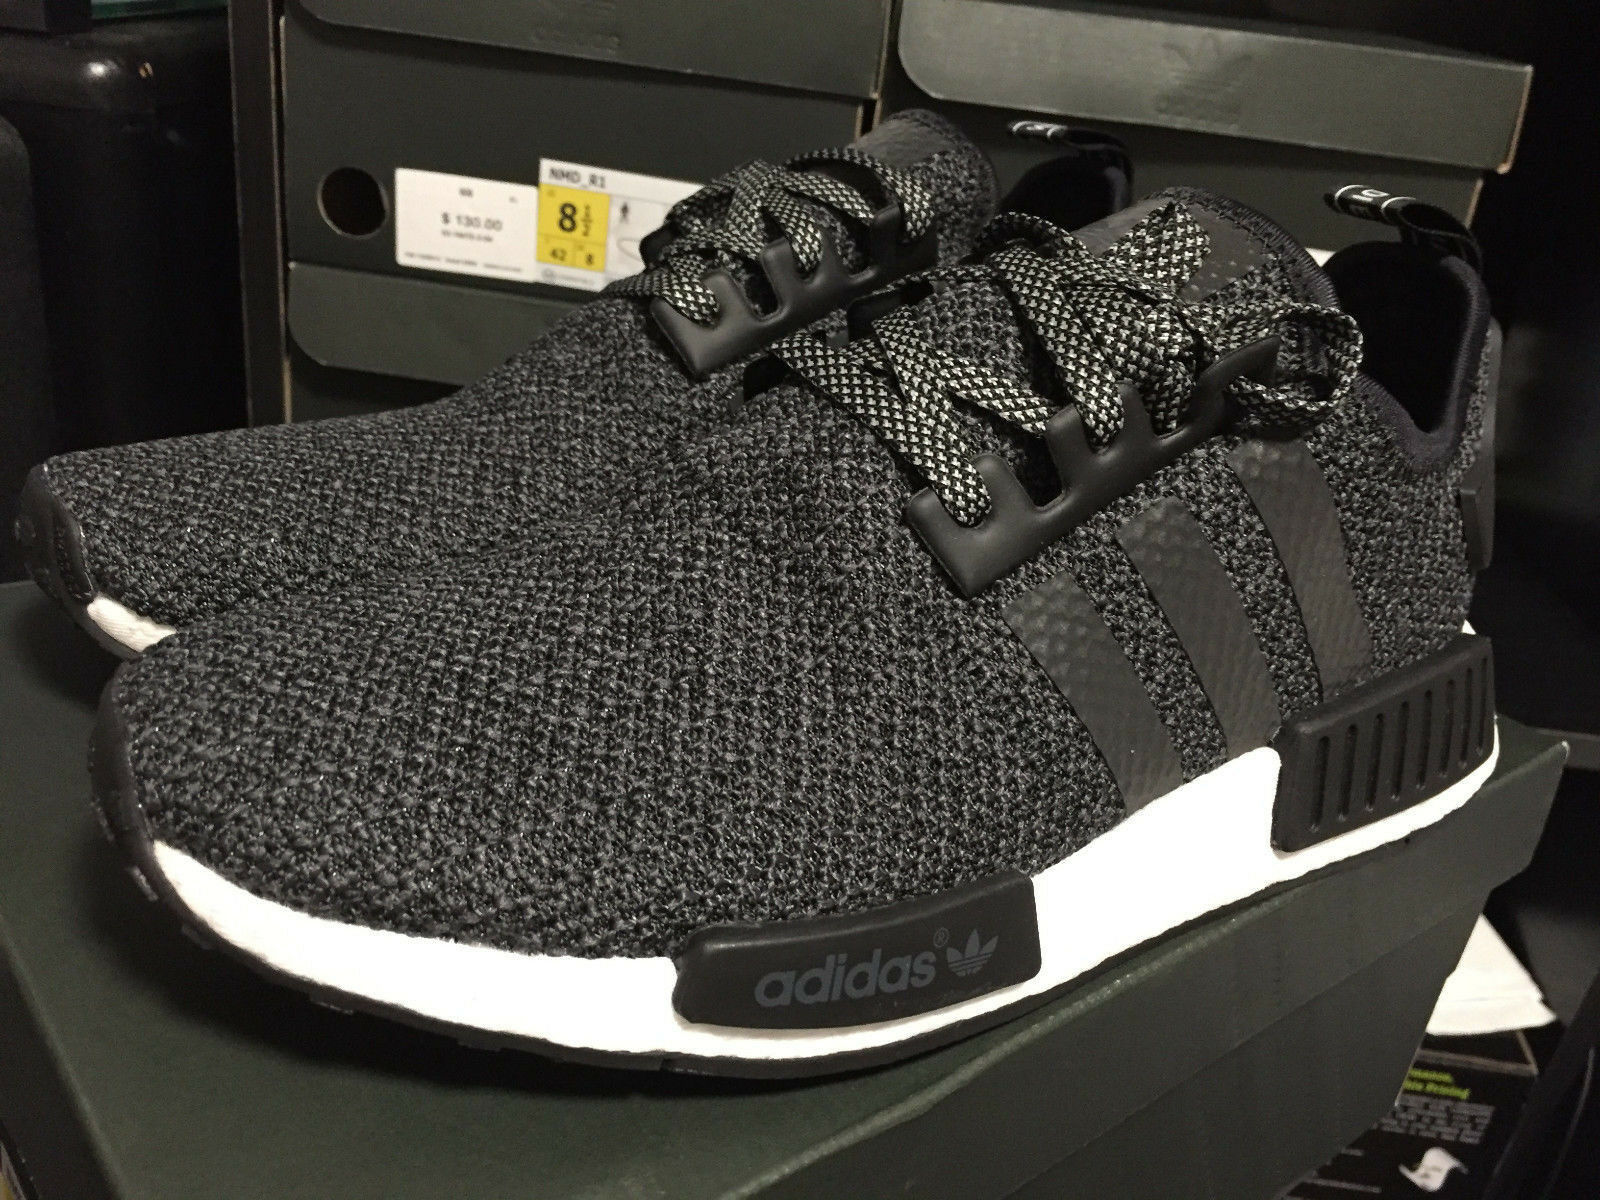 Details about adidas originals NMD R1 mens trainers B39505 sneakers shoes